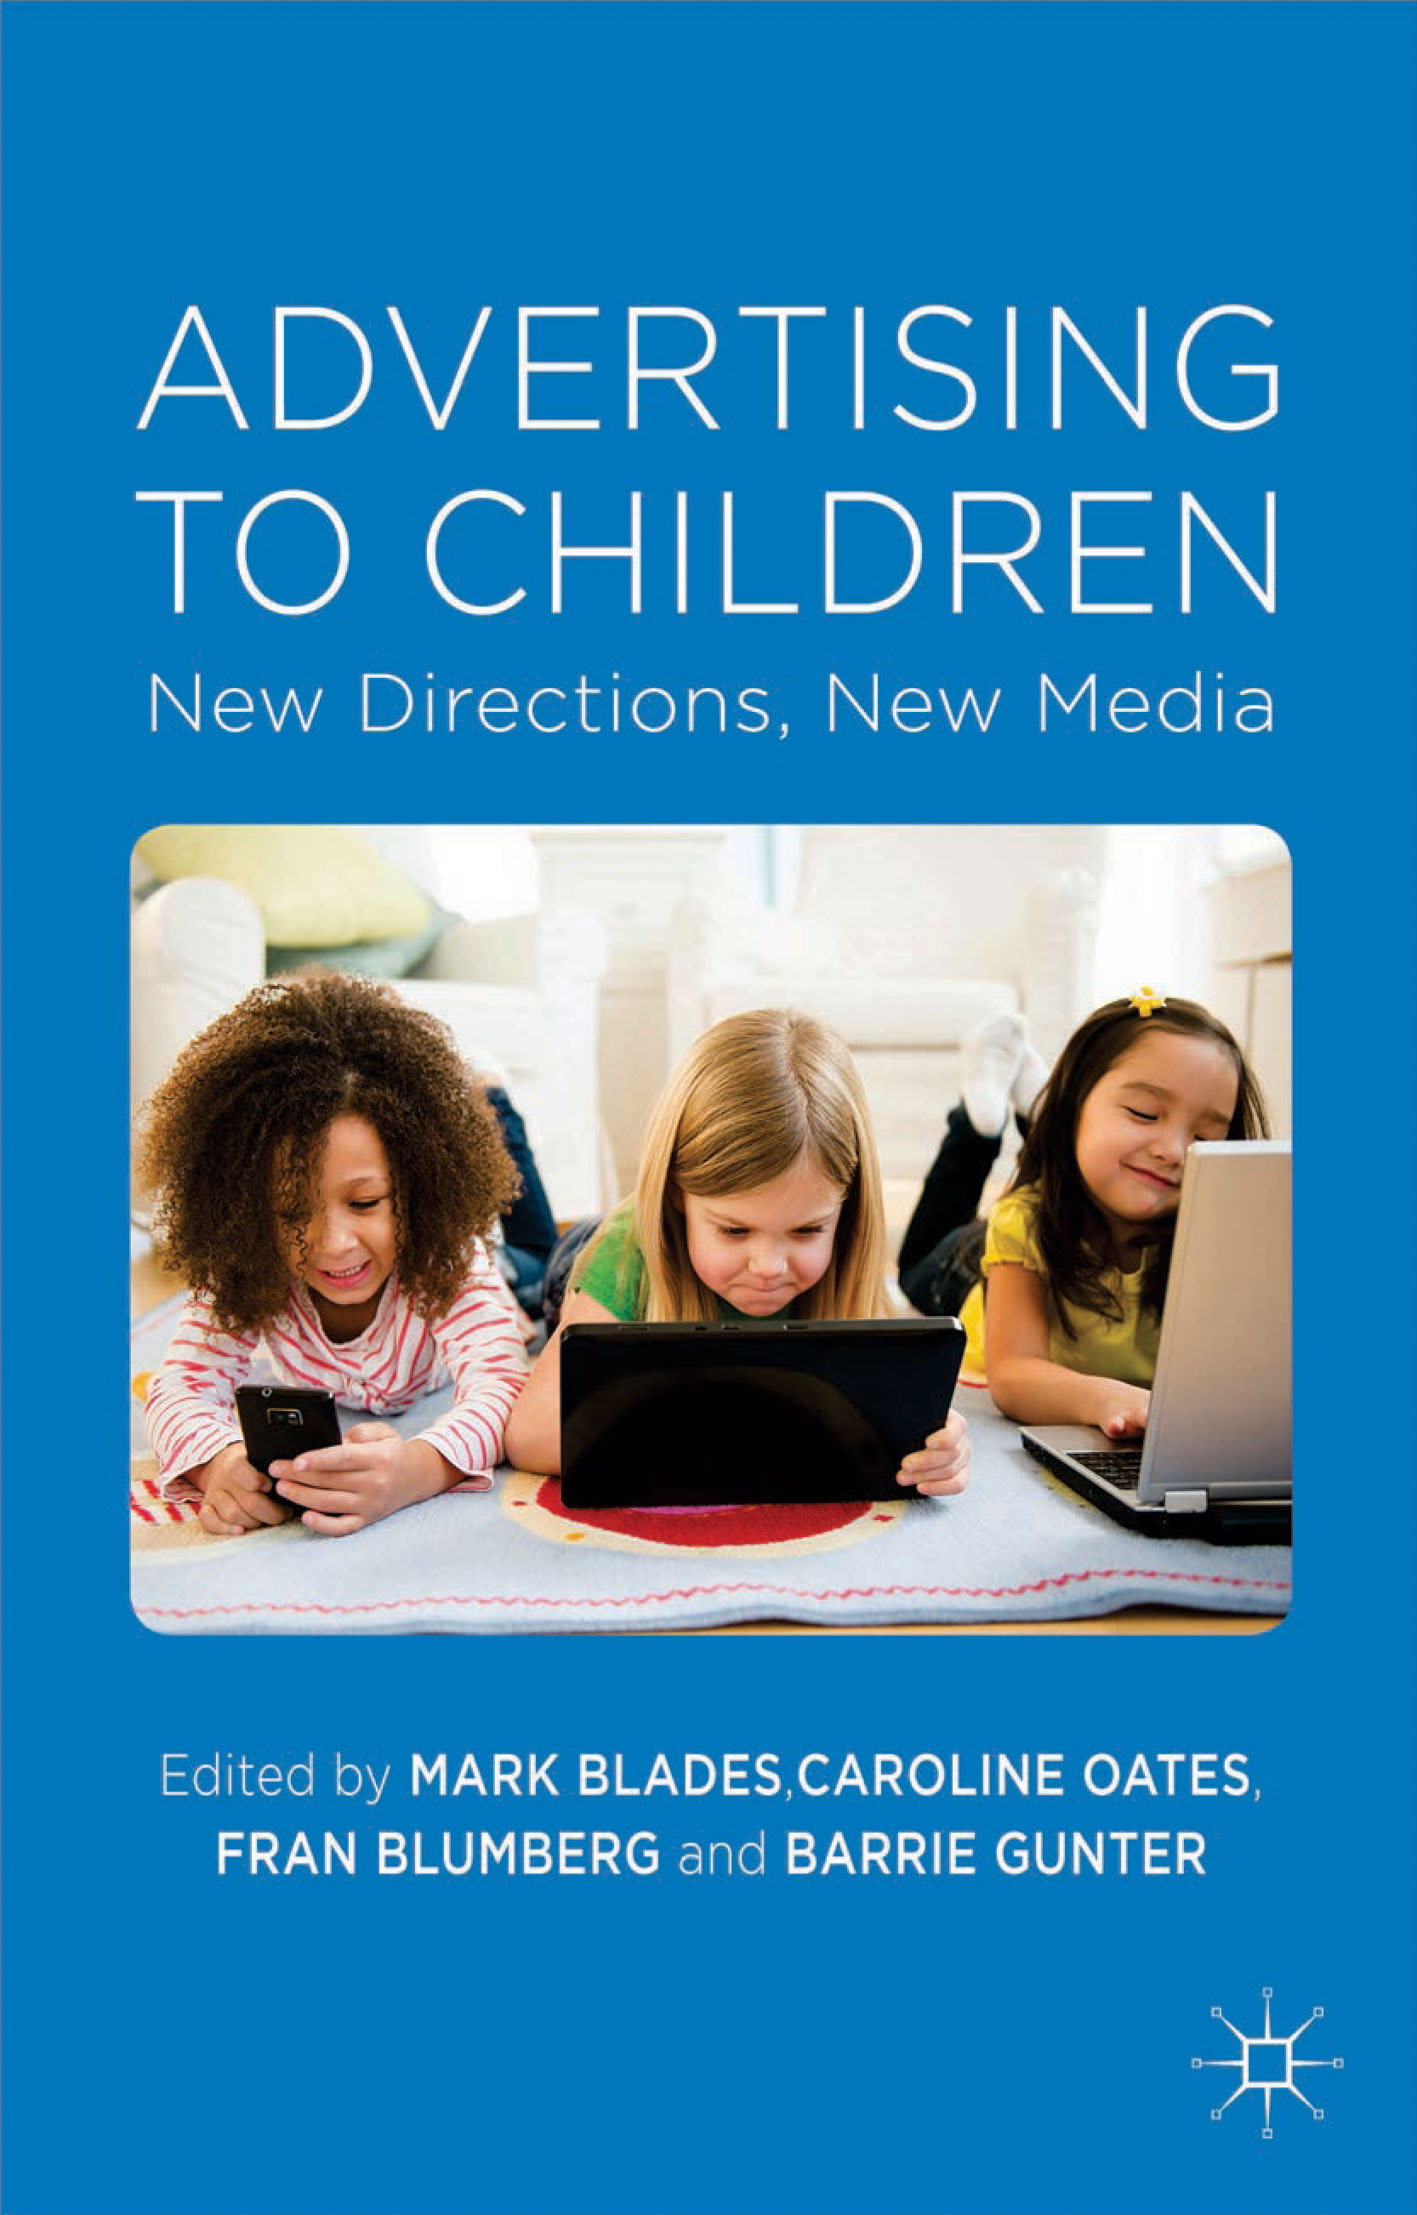 Download Ebook Advertising to Children by Mark Blades Pdf